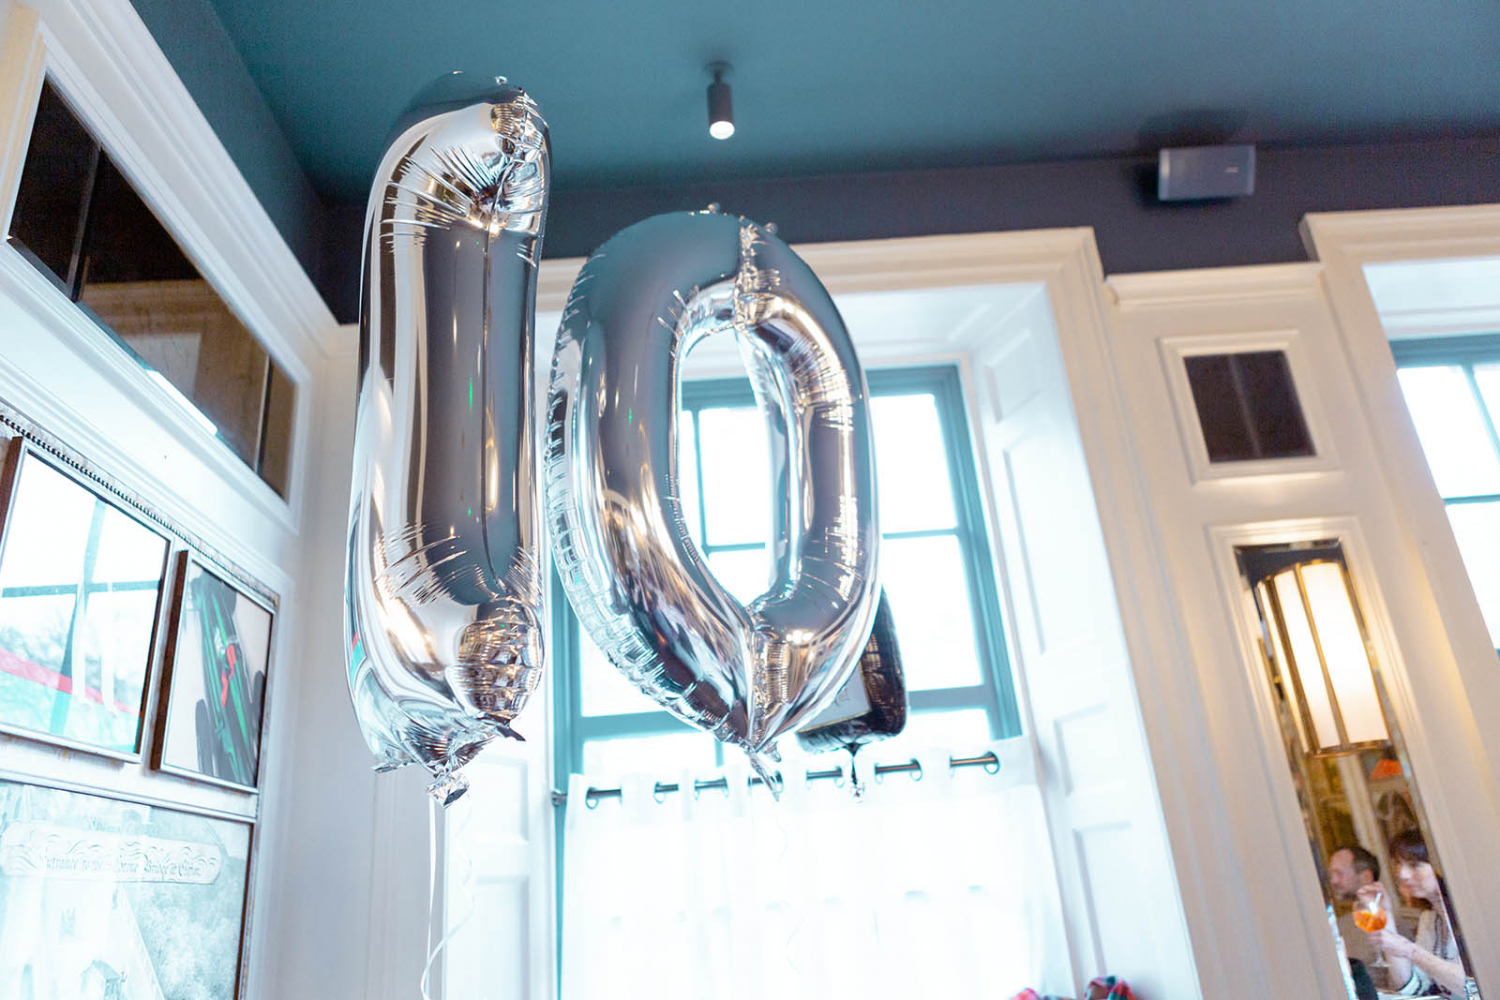 10 Years balloons by Max McClure